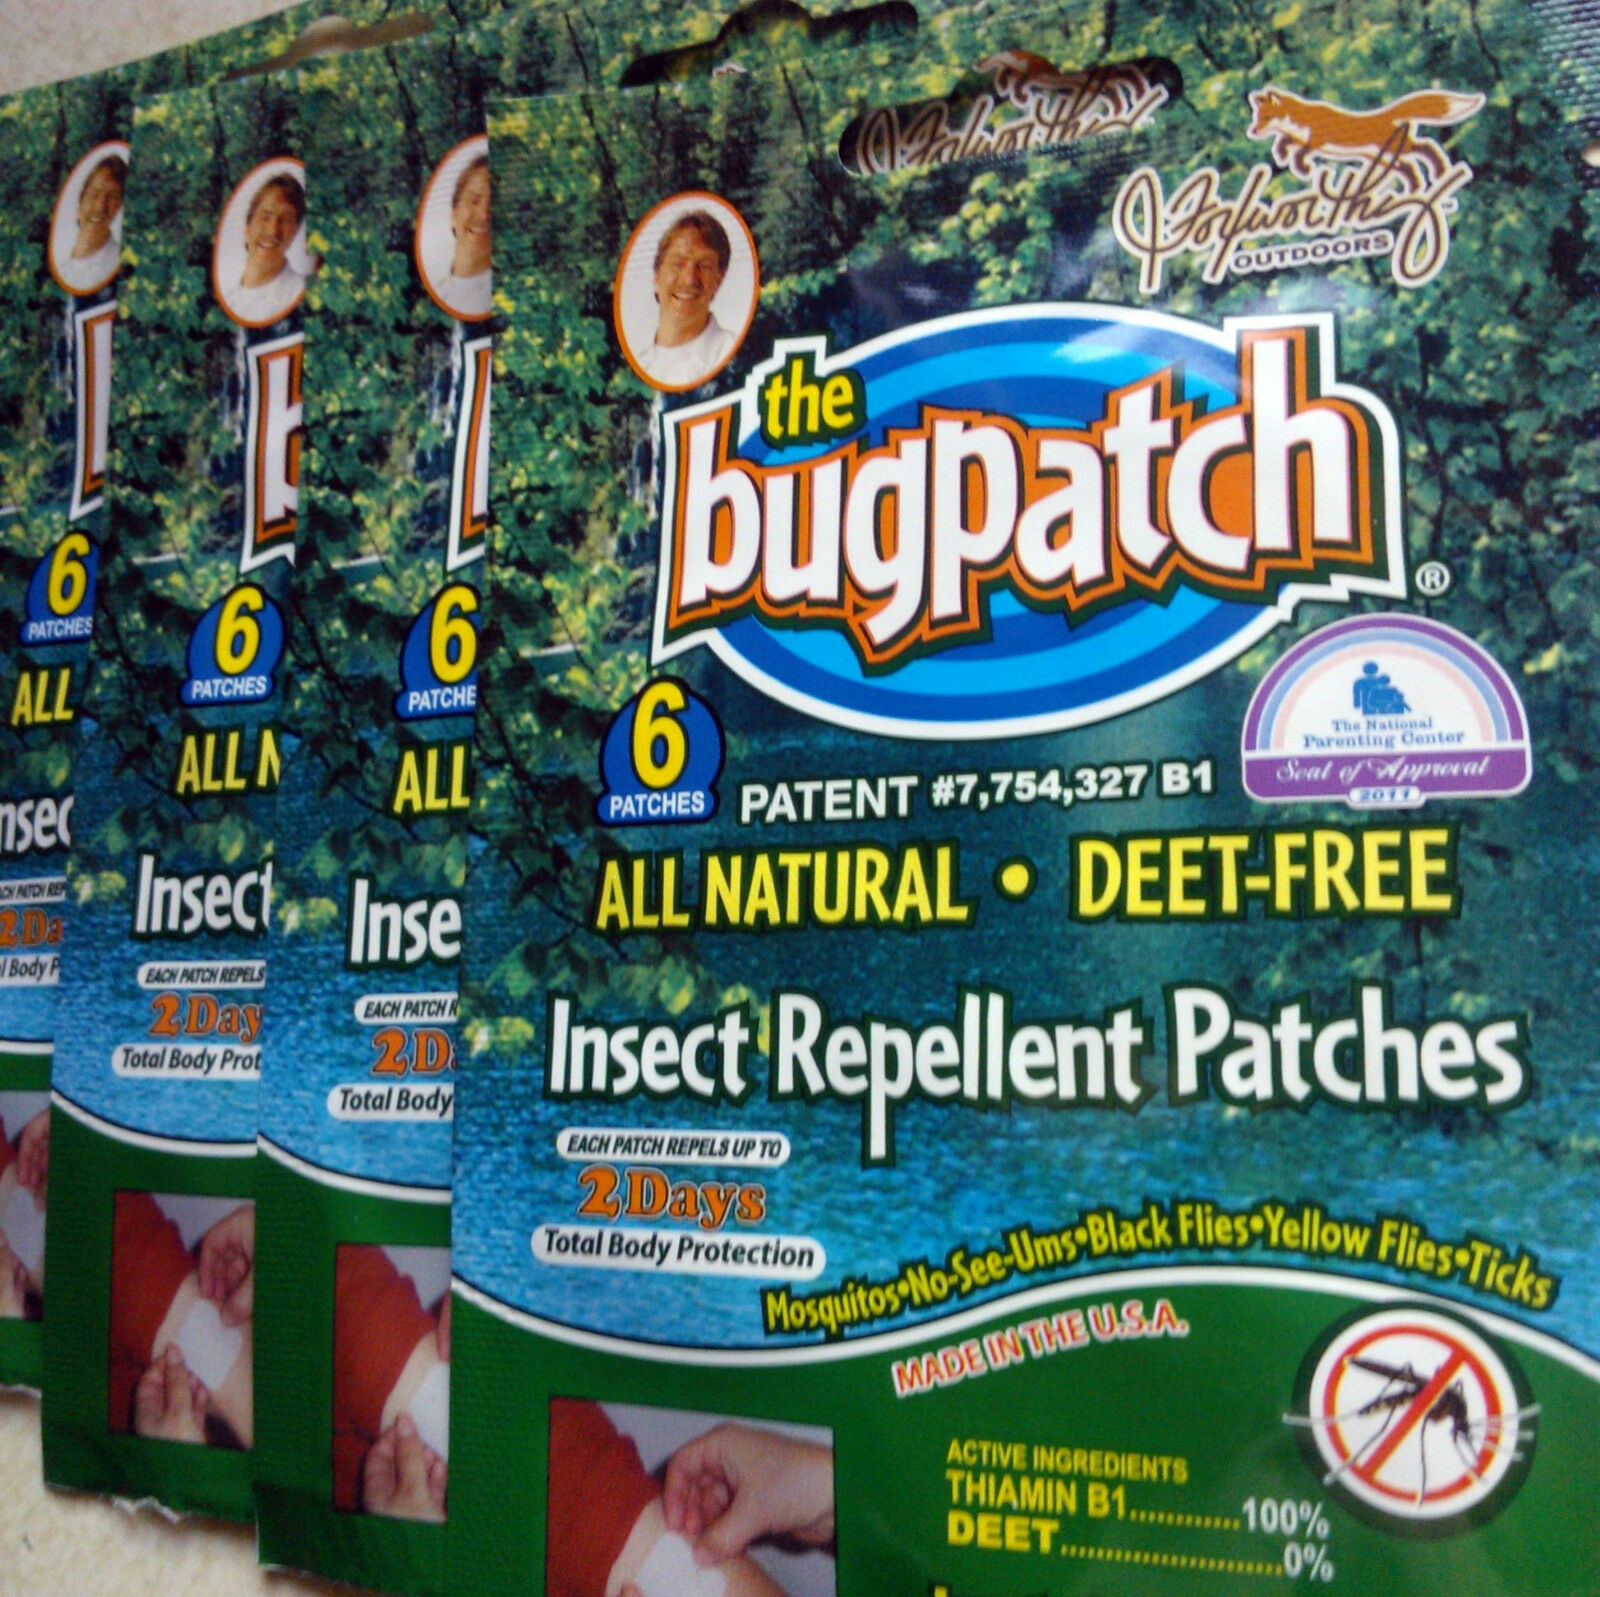 MOSI & OTHER BITING  INSECT REPEL BUG PATCHES PATCHES BUG 1 - 10 wks. supply100% NATURAL c27c62